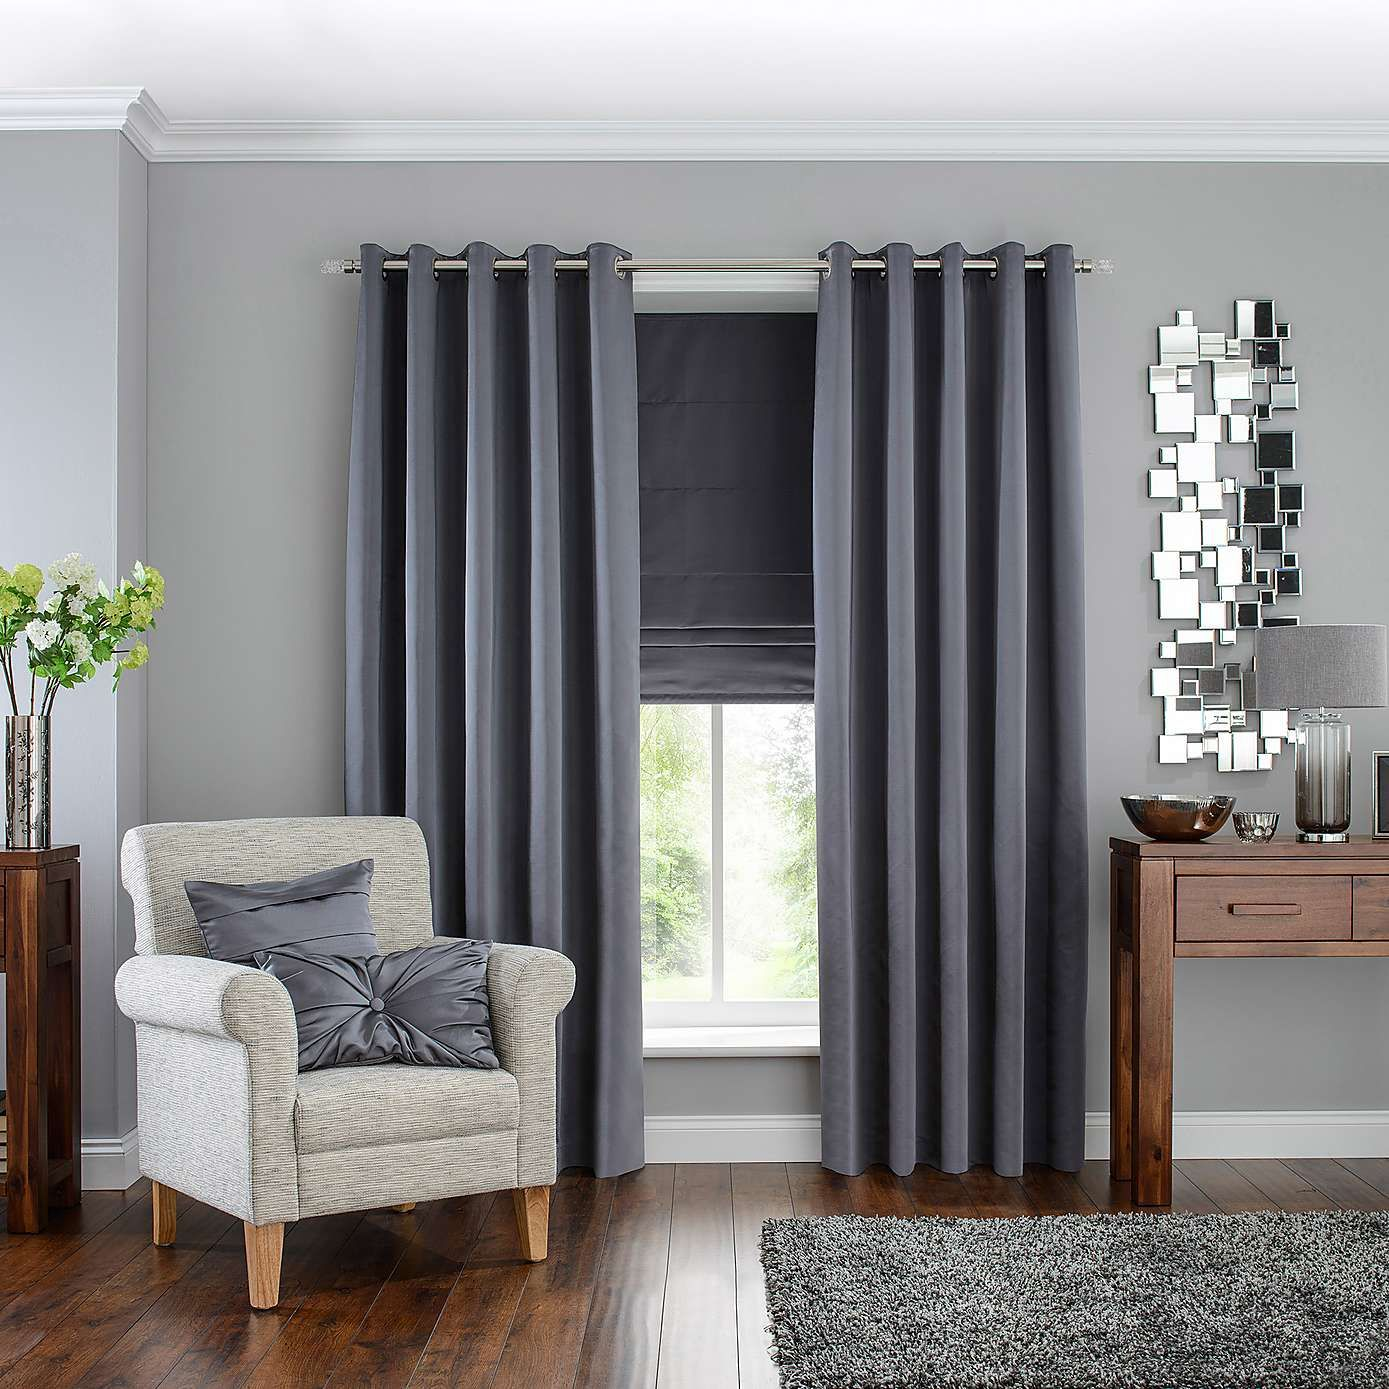 Blackout curtains for bedroom - Hotel Grey Venice Blackout Eyelet Curtains Dunelm